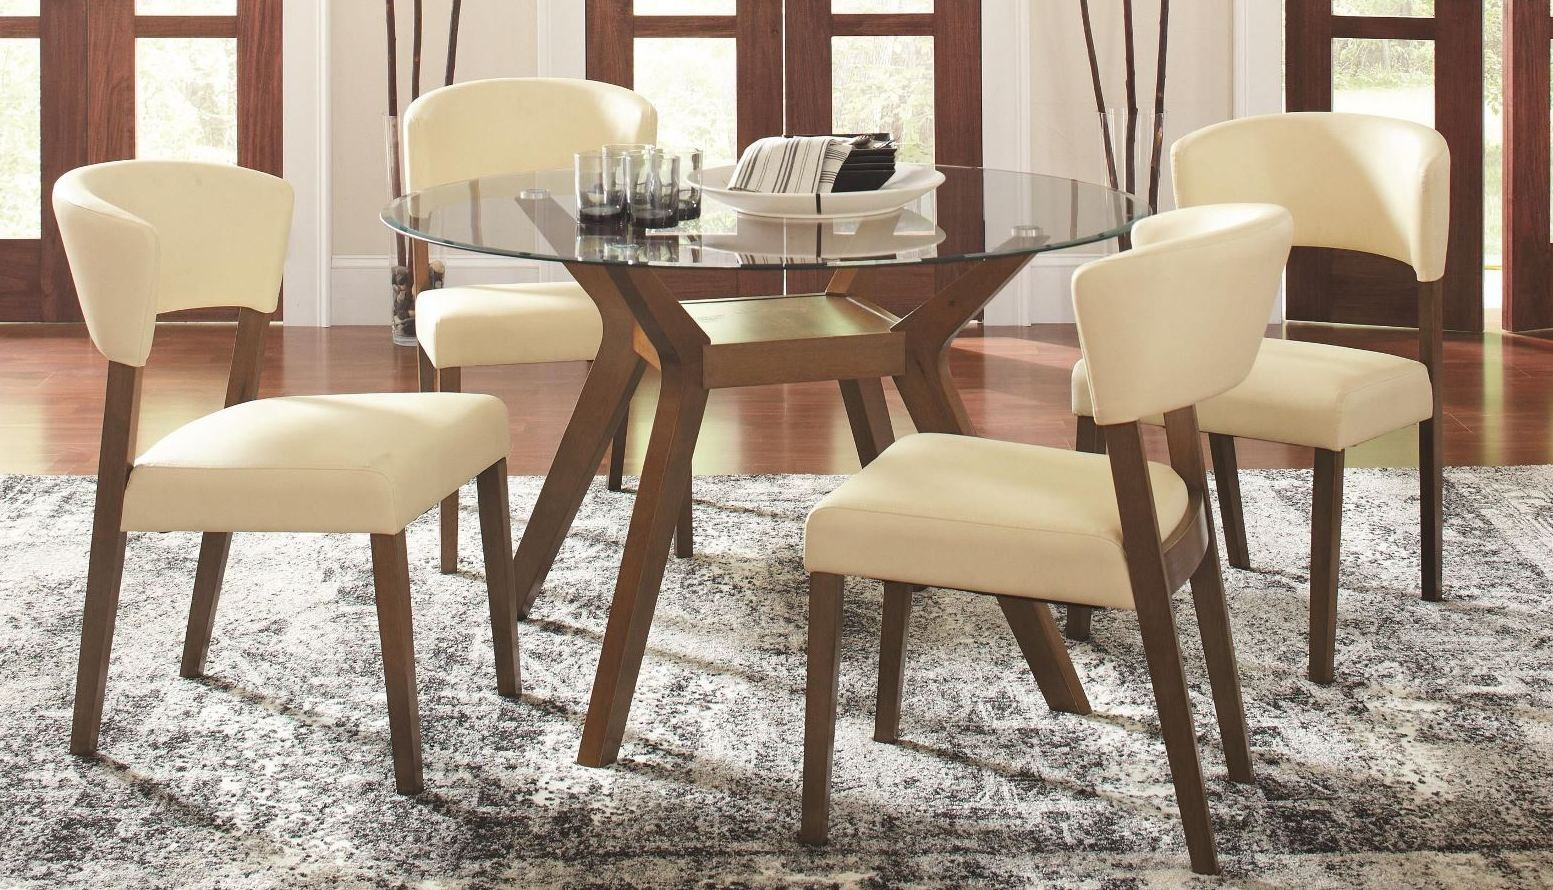 Dining Room Furniture Glass Paxton Round Glass Dining Room Set From Coaster 122180